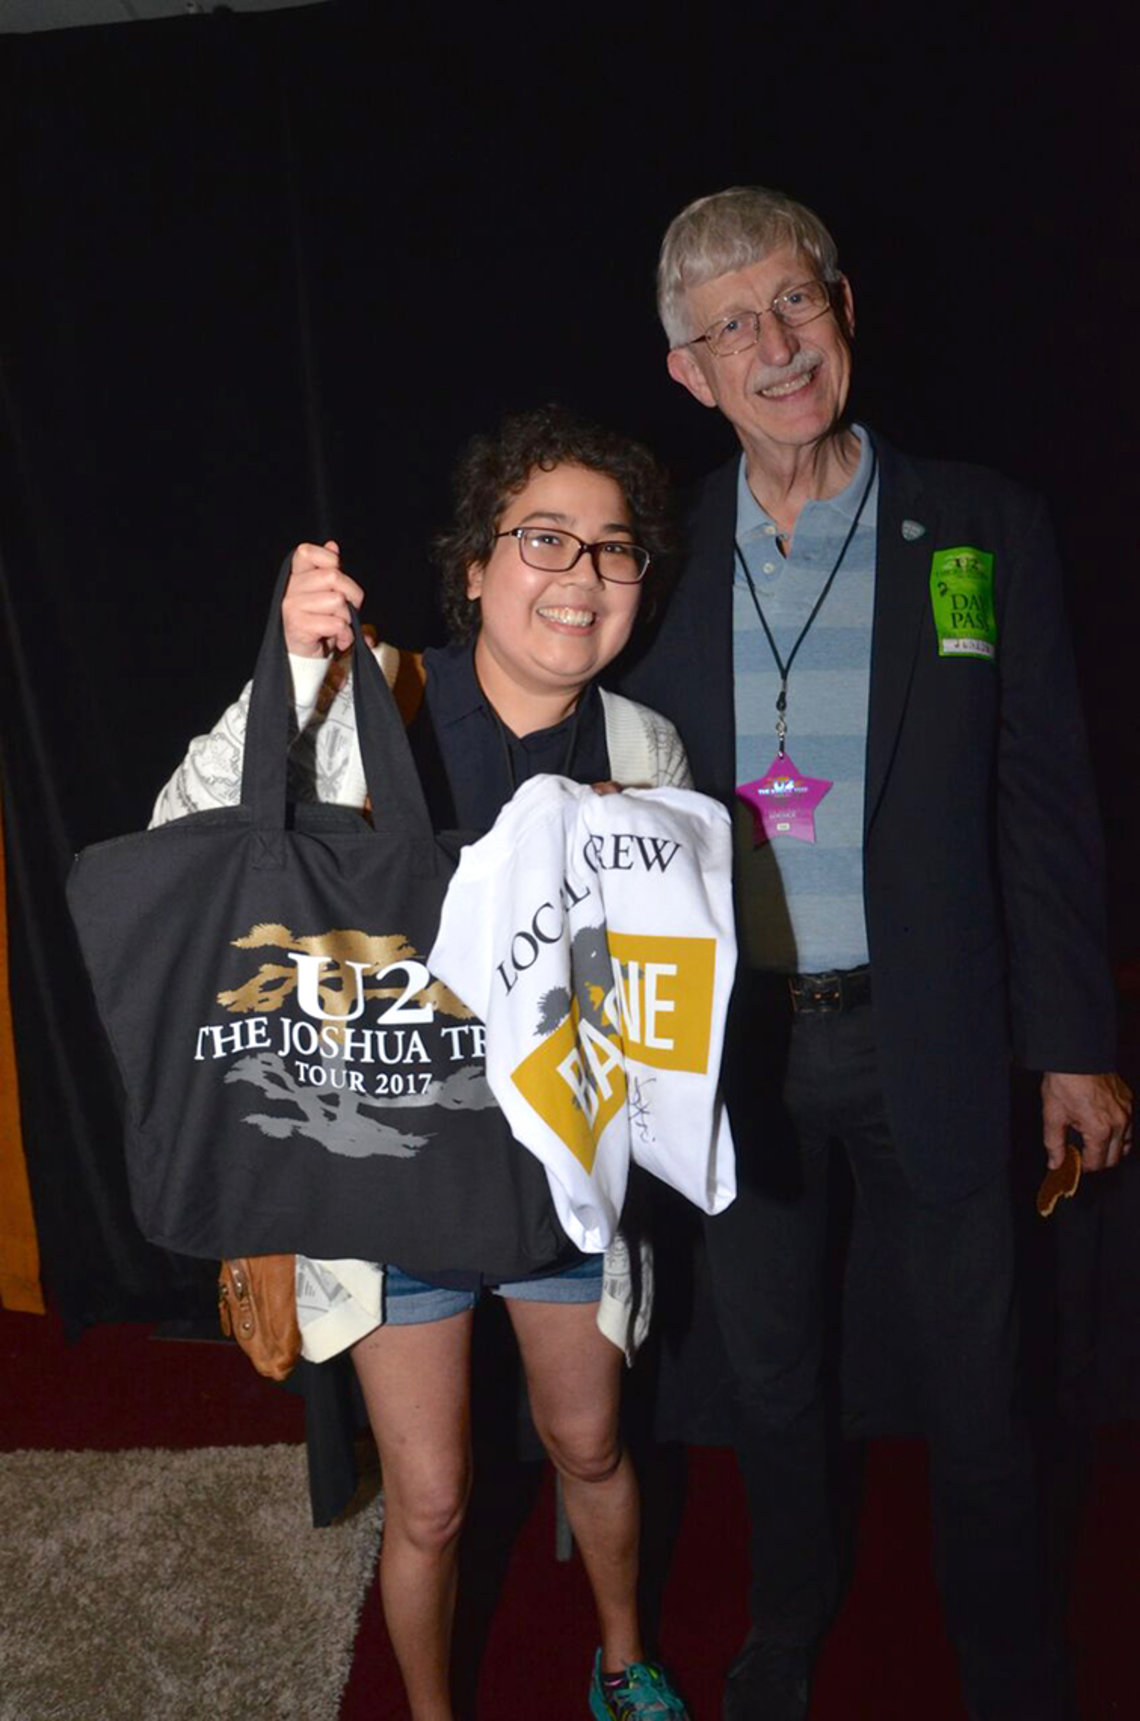 Ness  holds up a tote bag and a t-shirt with Collins